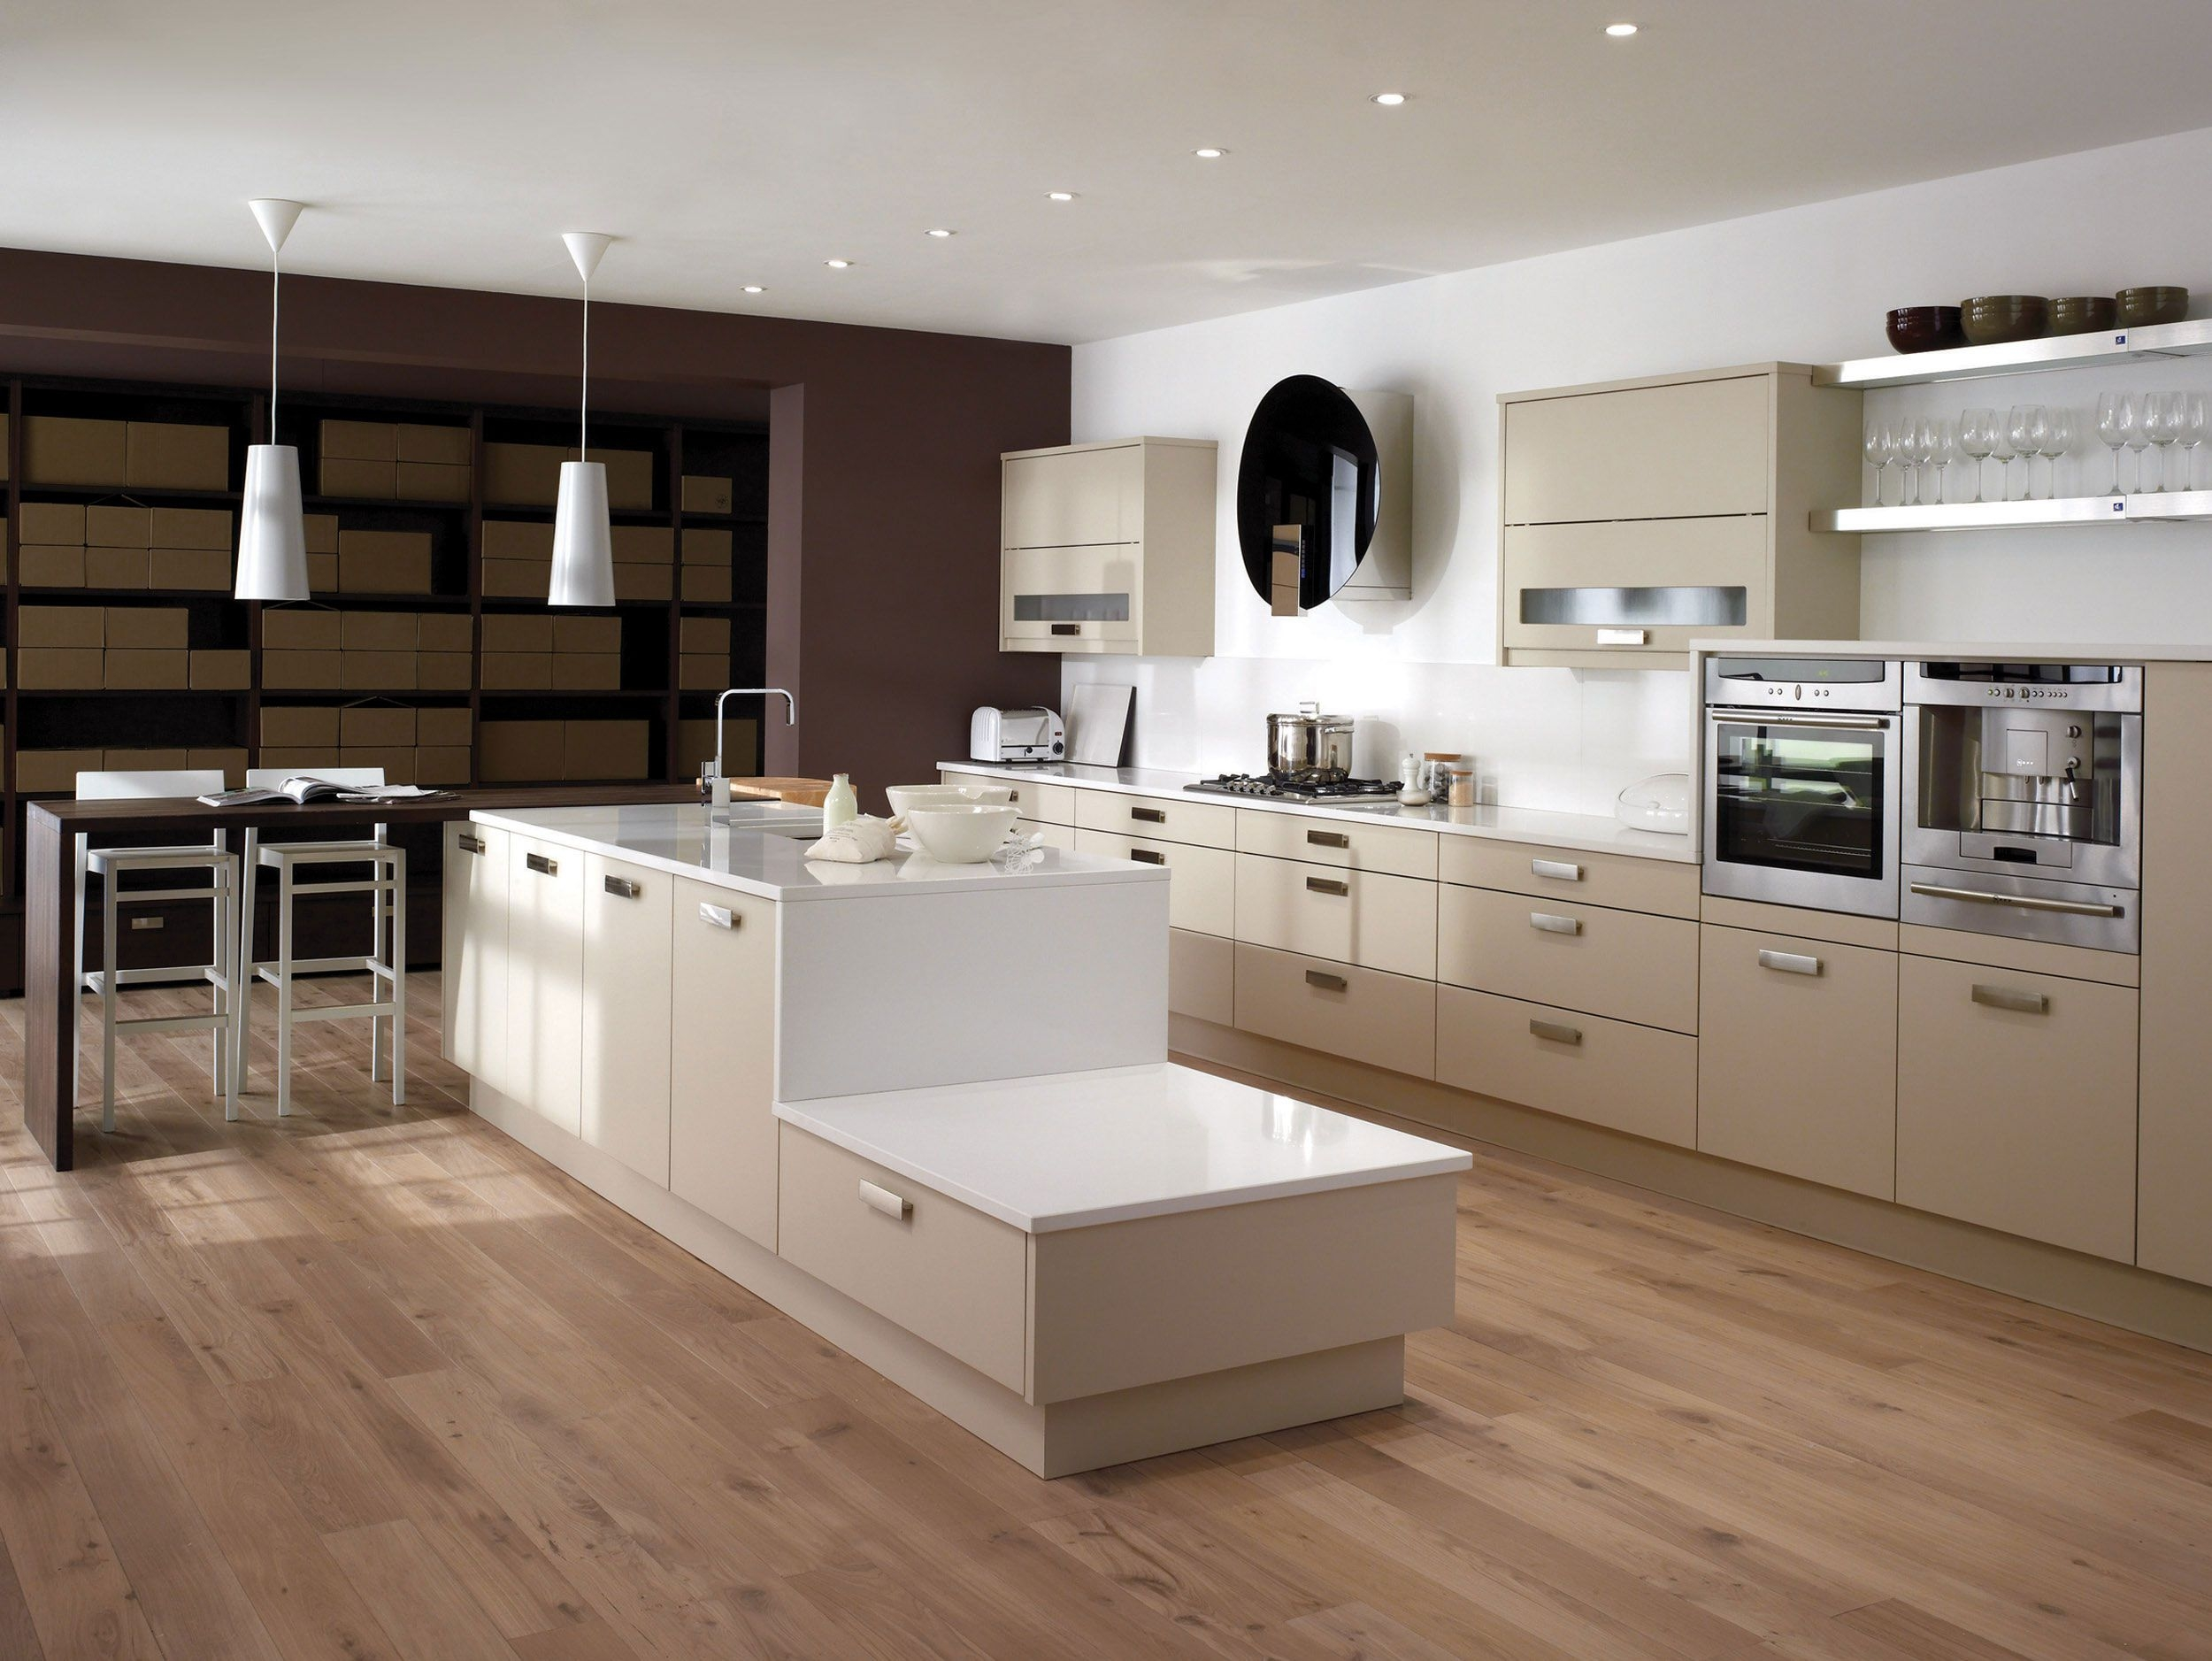 Hanging Kitchen Wall Cabinets On Plasterboard